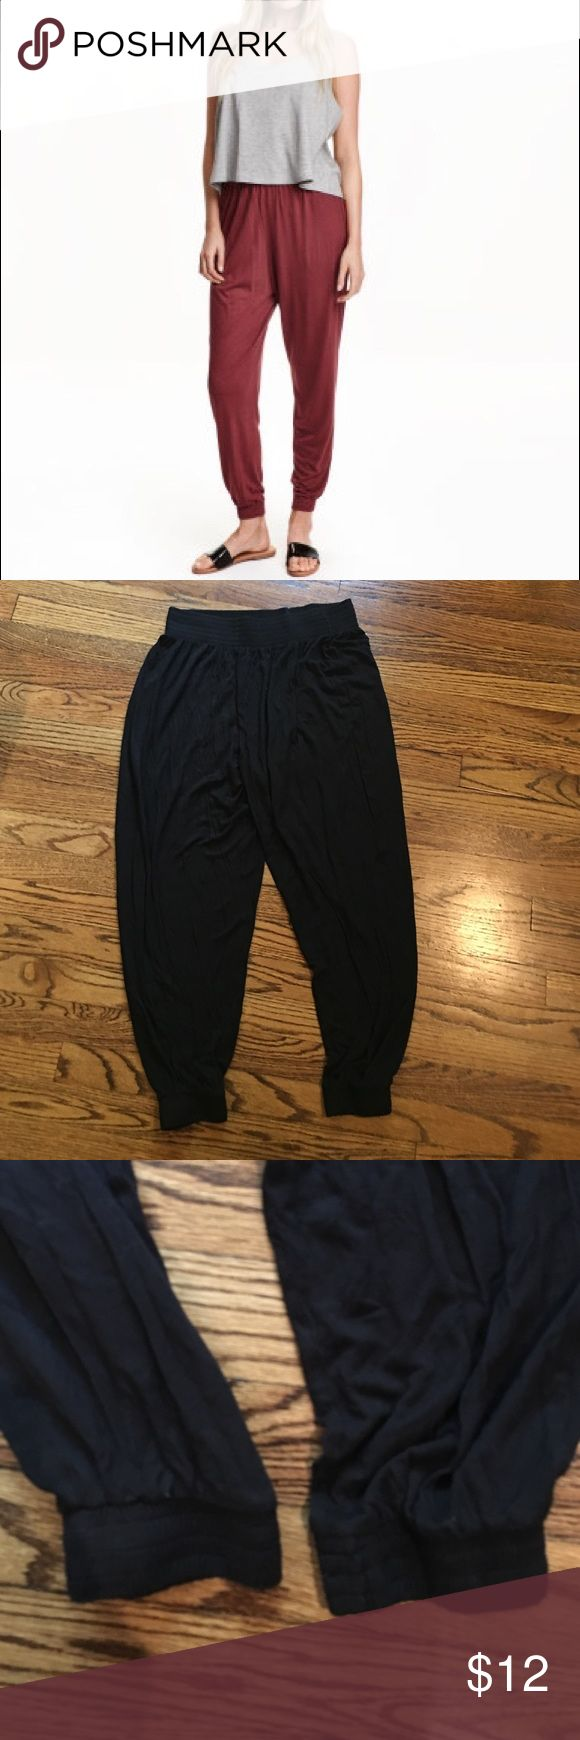 H&M parachute pants Looks like the first picture except in black. Super comfy. Great chic look. Size m. In perfect shape. H&M Pants